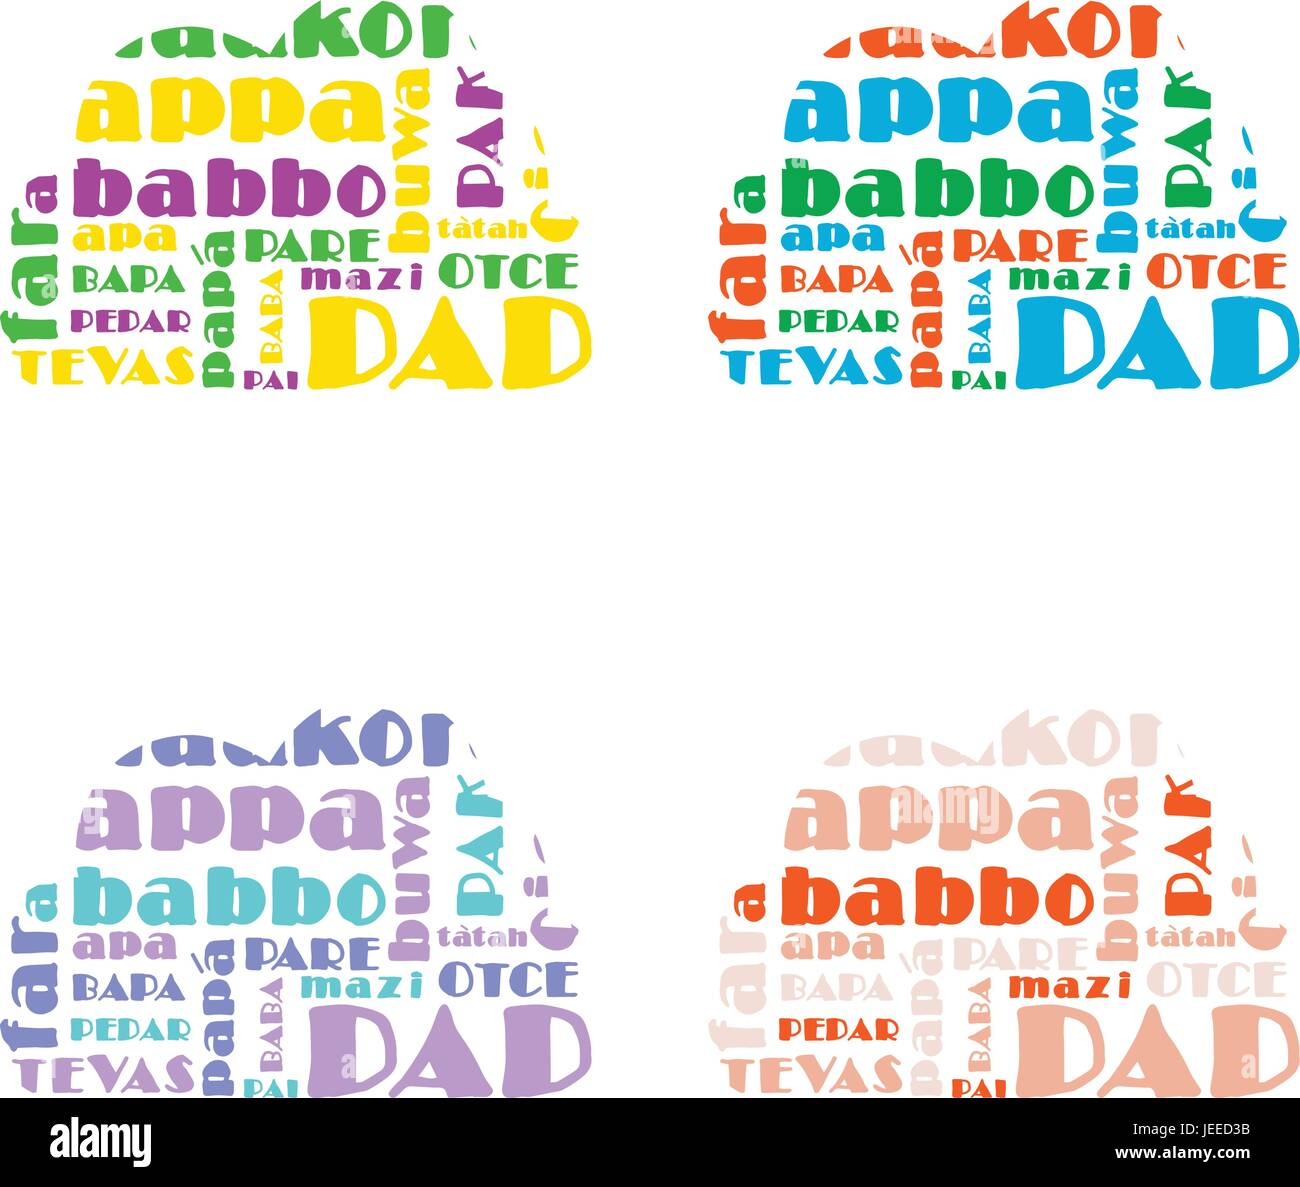 Greeting card with father day message stock vector art greeting card with father day message m4hsunfo